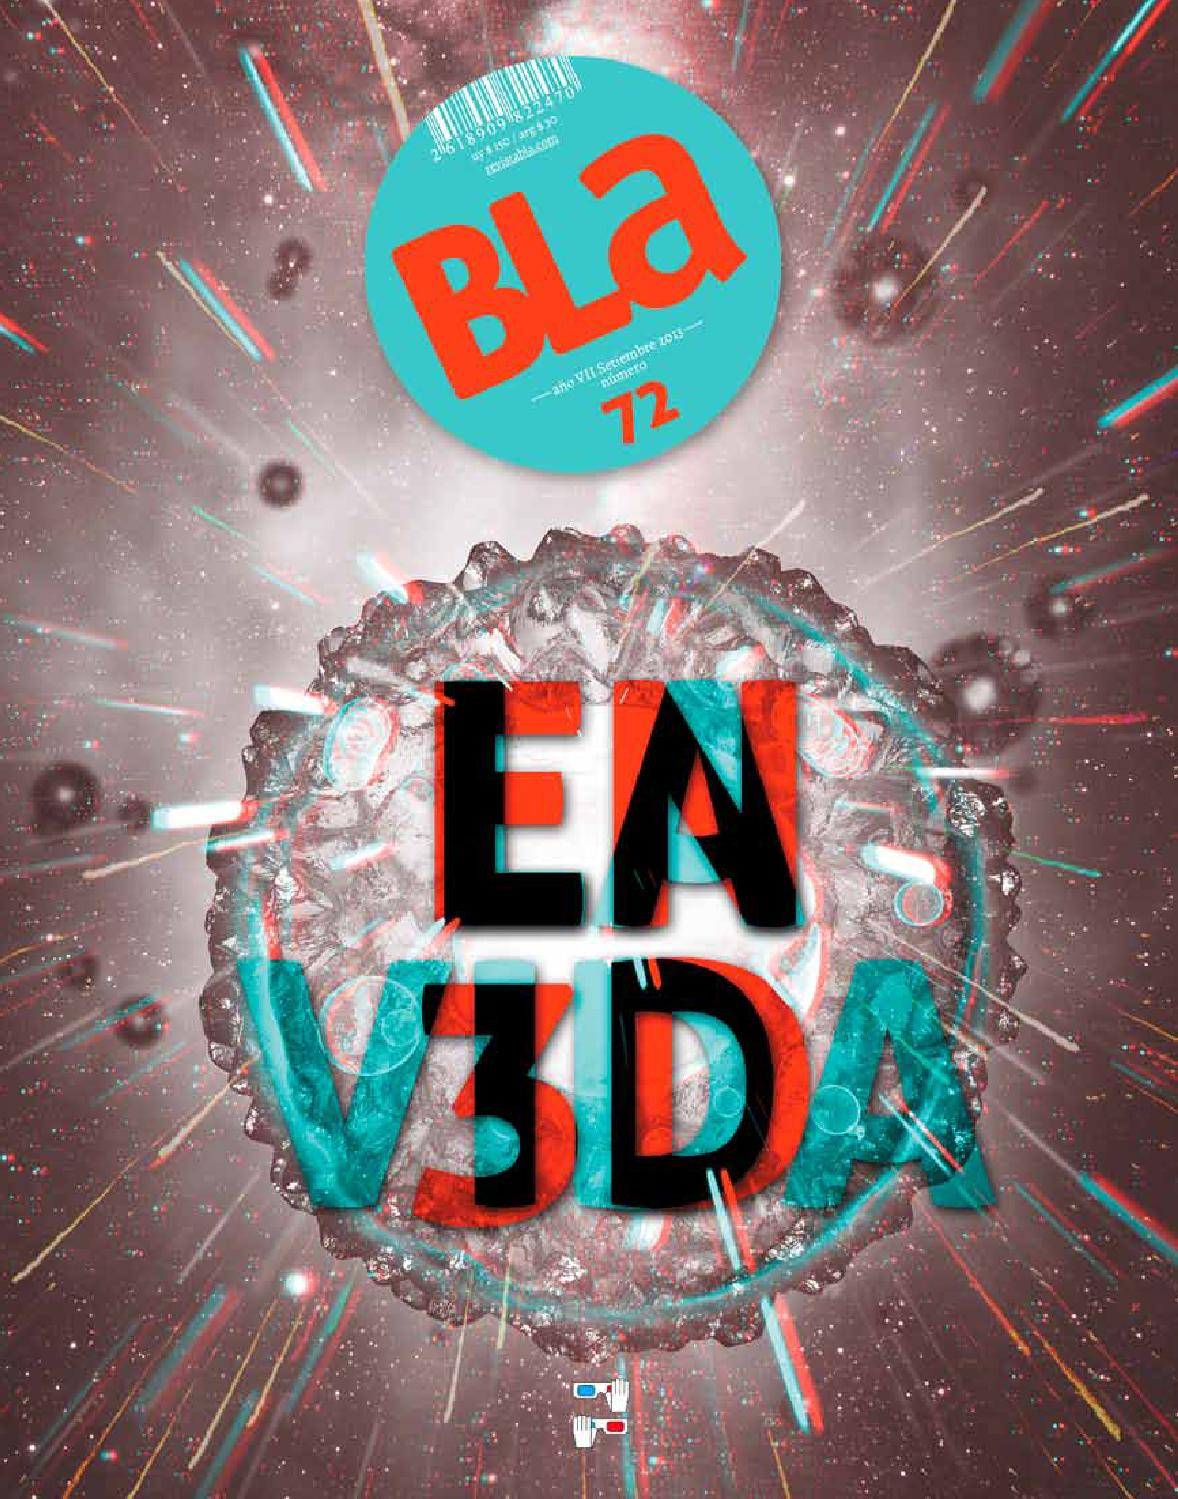 54ff3f0cab4 Bla 072 by Editorial BLa - issuu